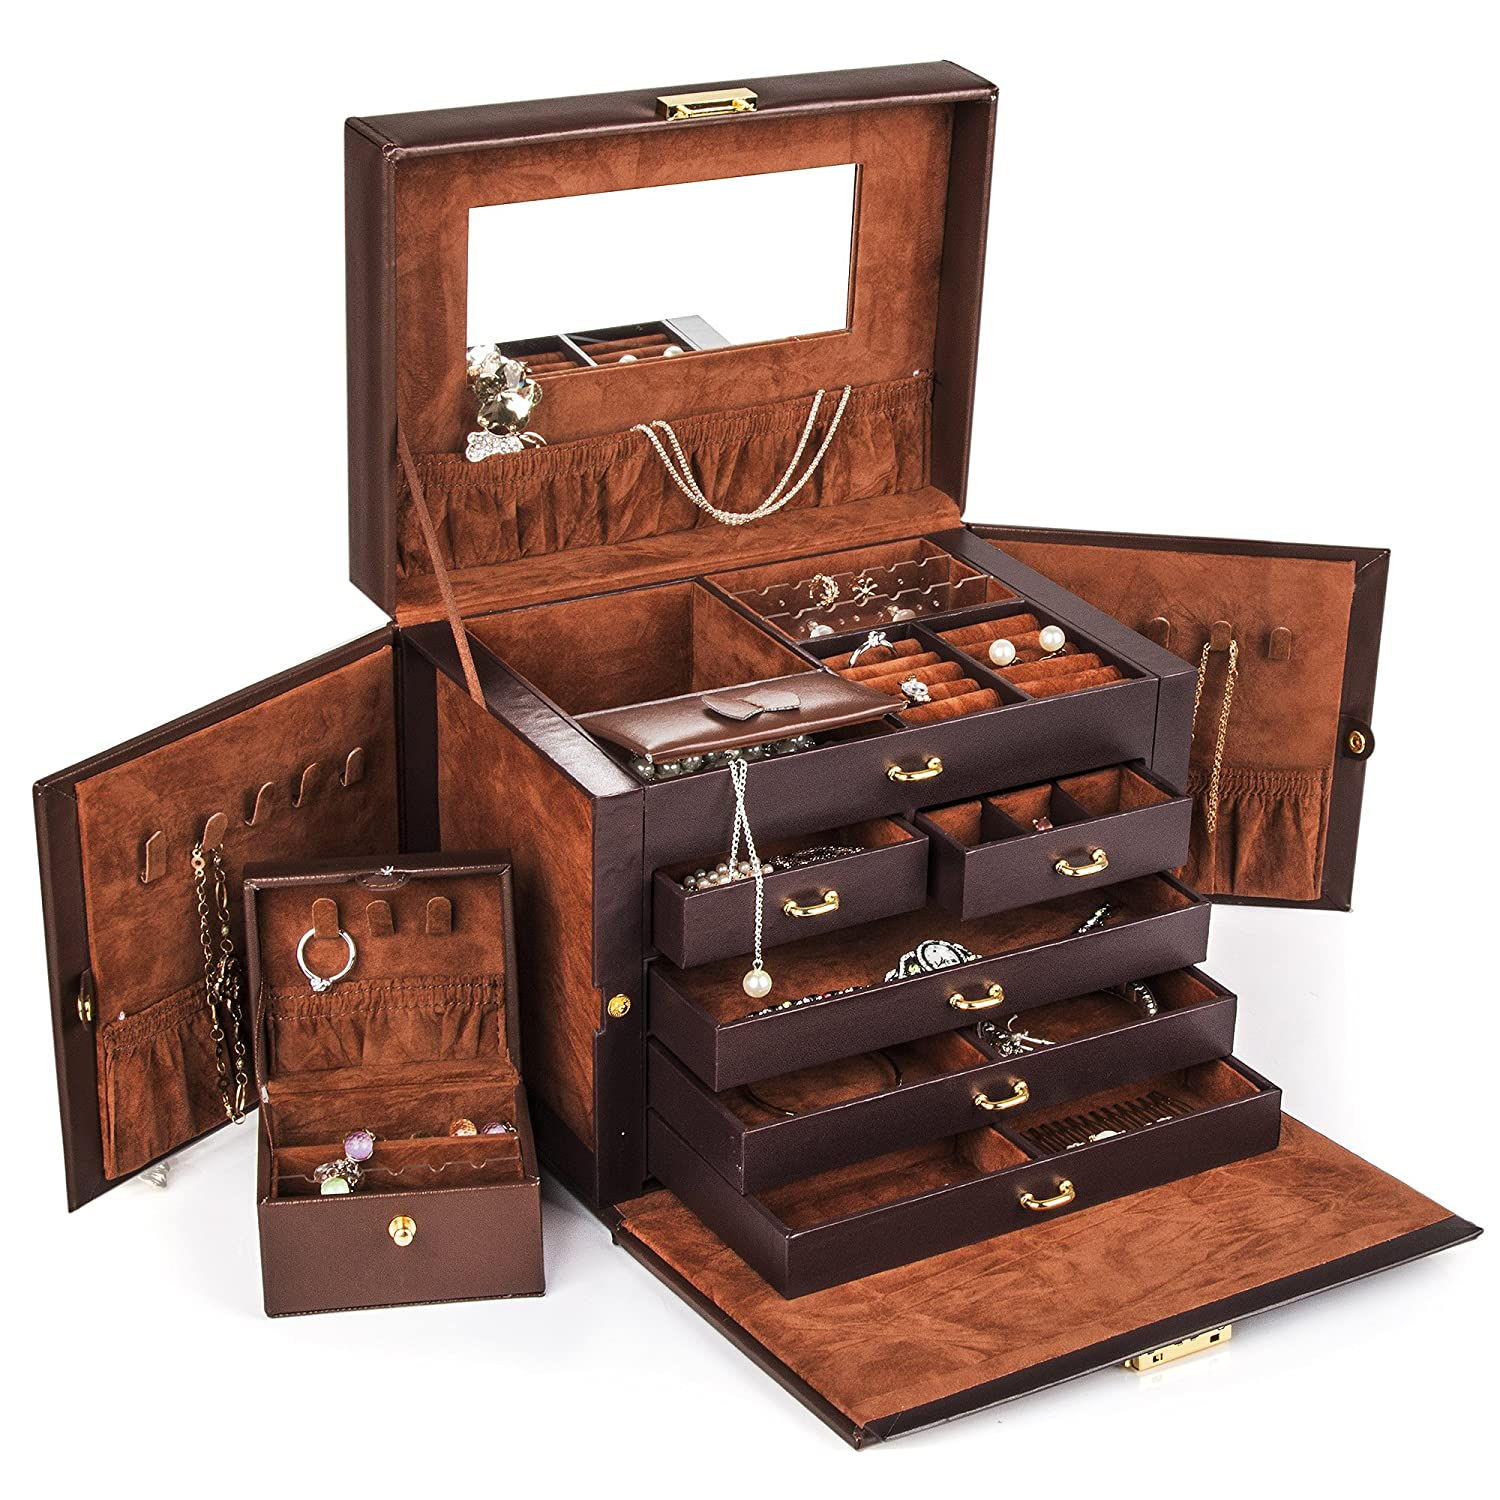 Amazon.com: Shining Image Brown LEATHER JEWELRY BOX / CASE ...